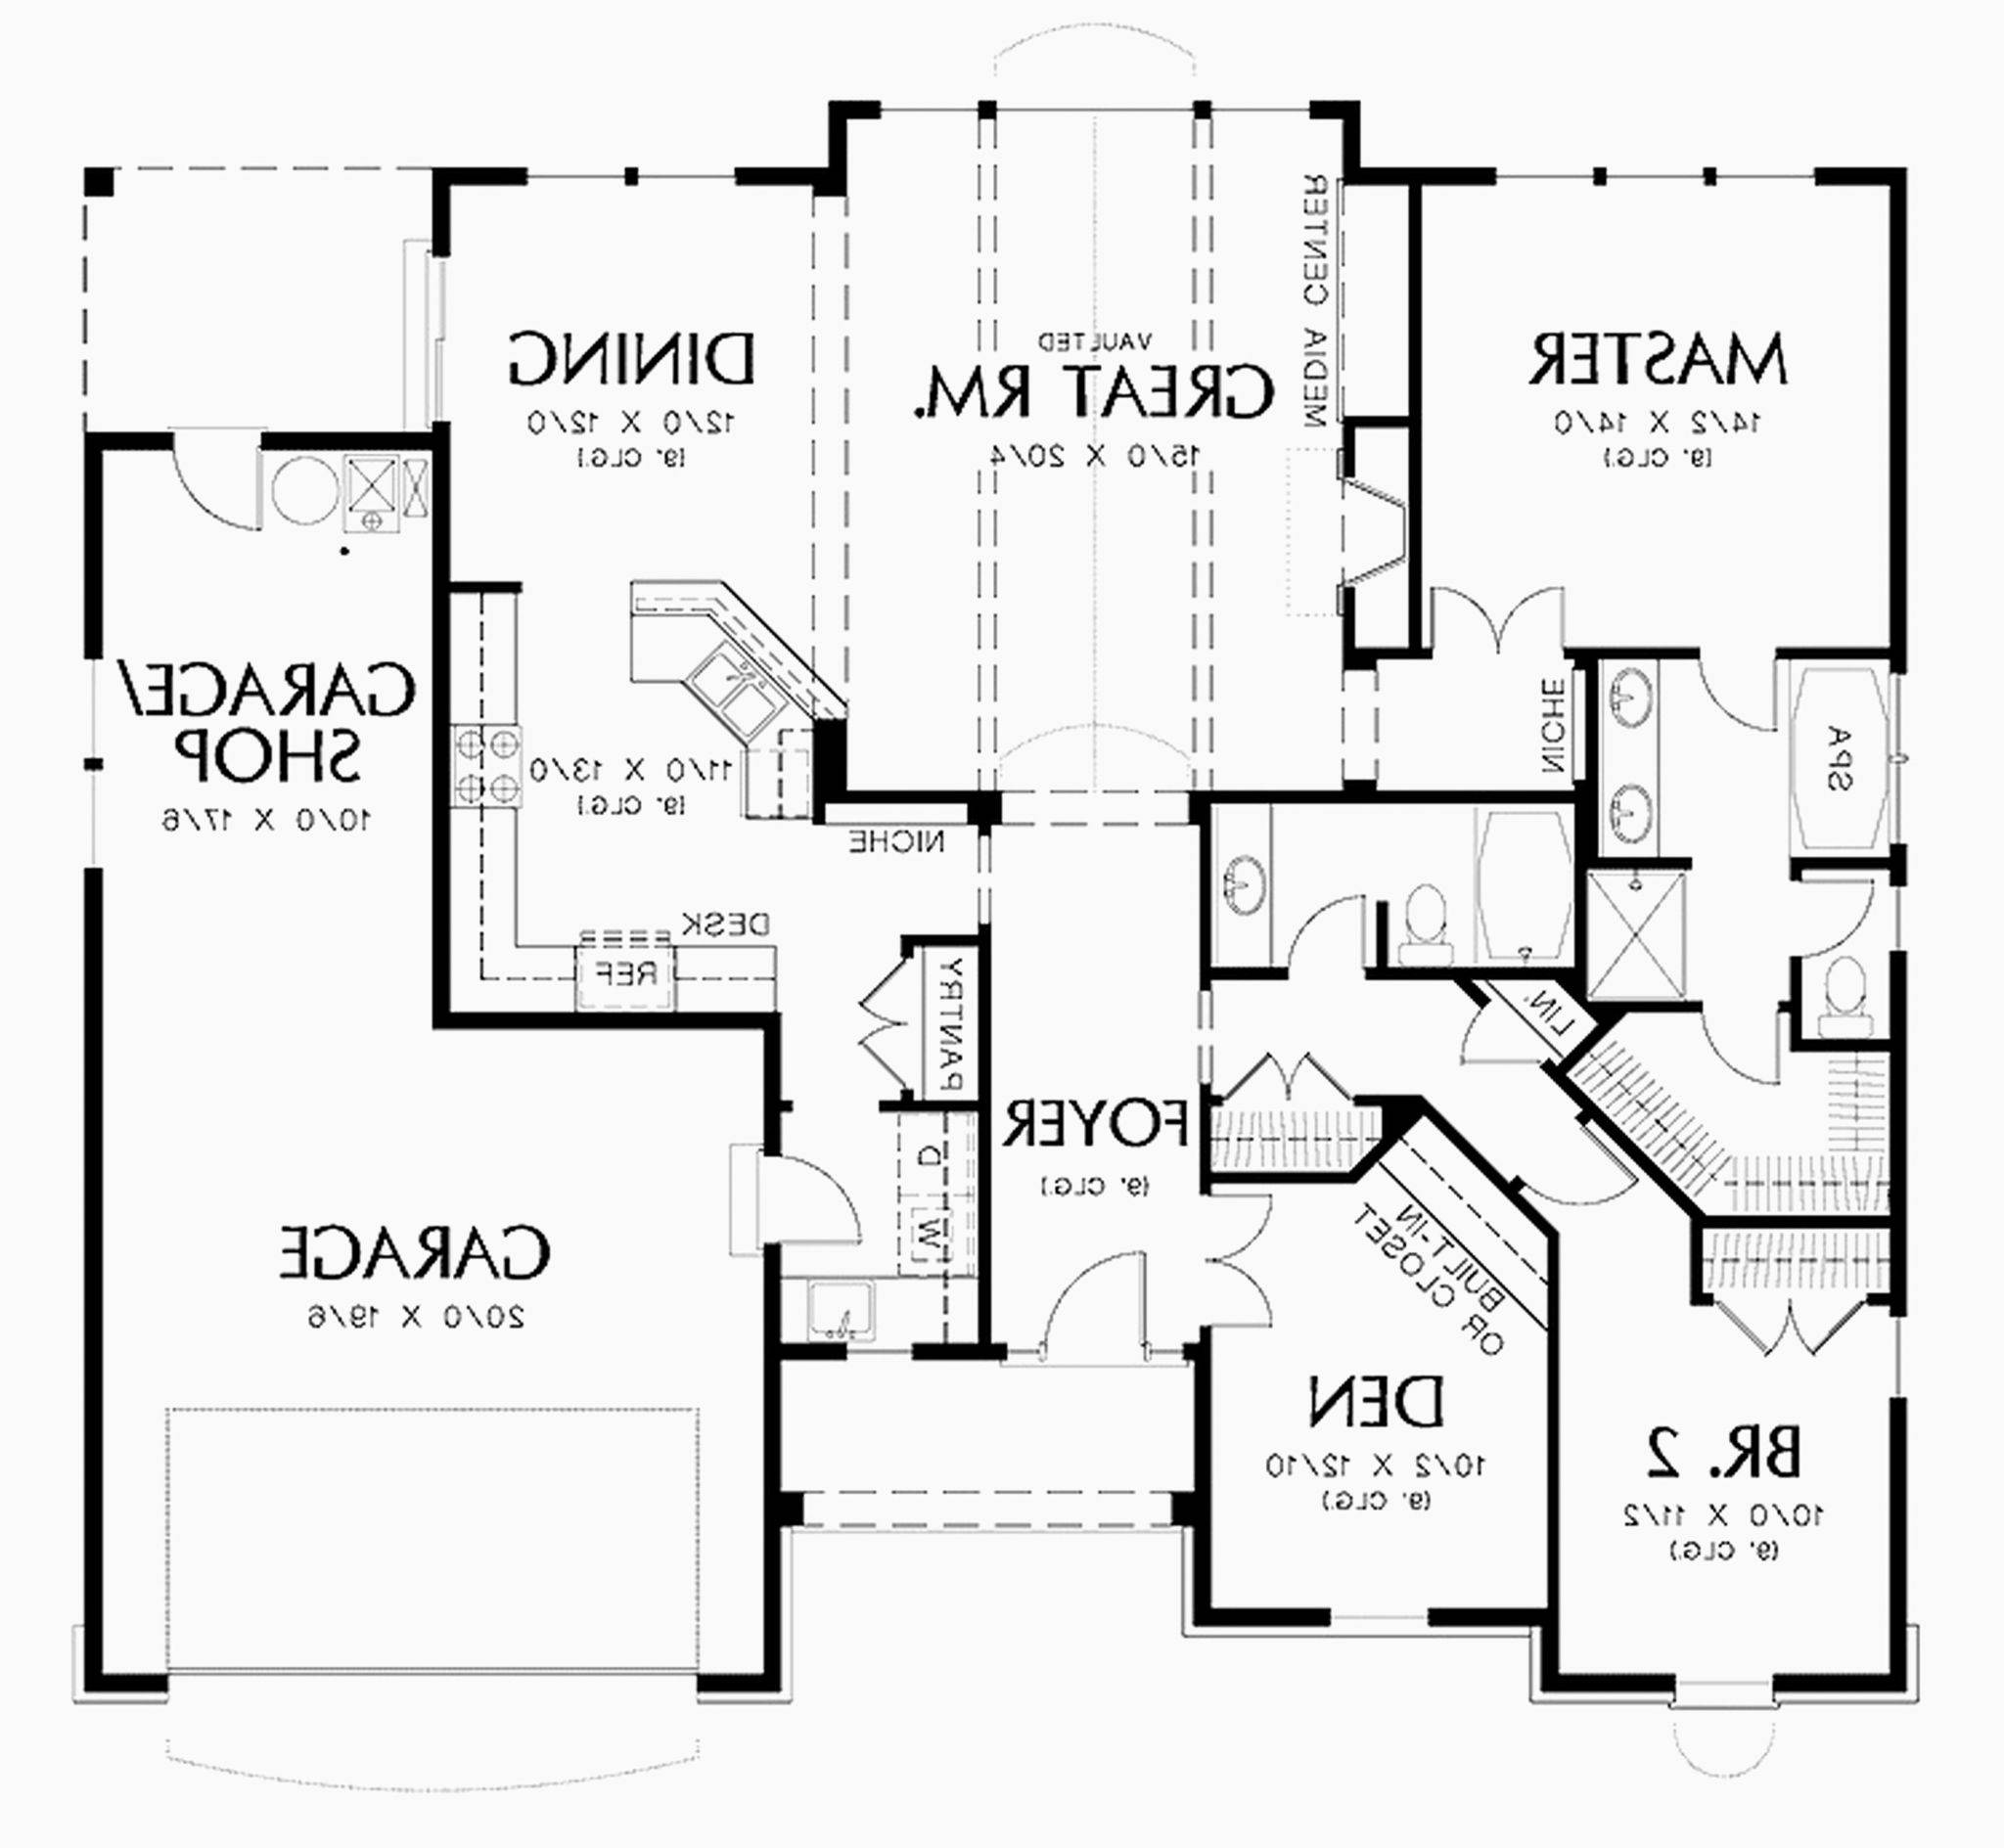 floor plan sketch as well as house sketch plan inspirational house sketch plan awesome fresh of floor plan sketch